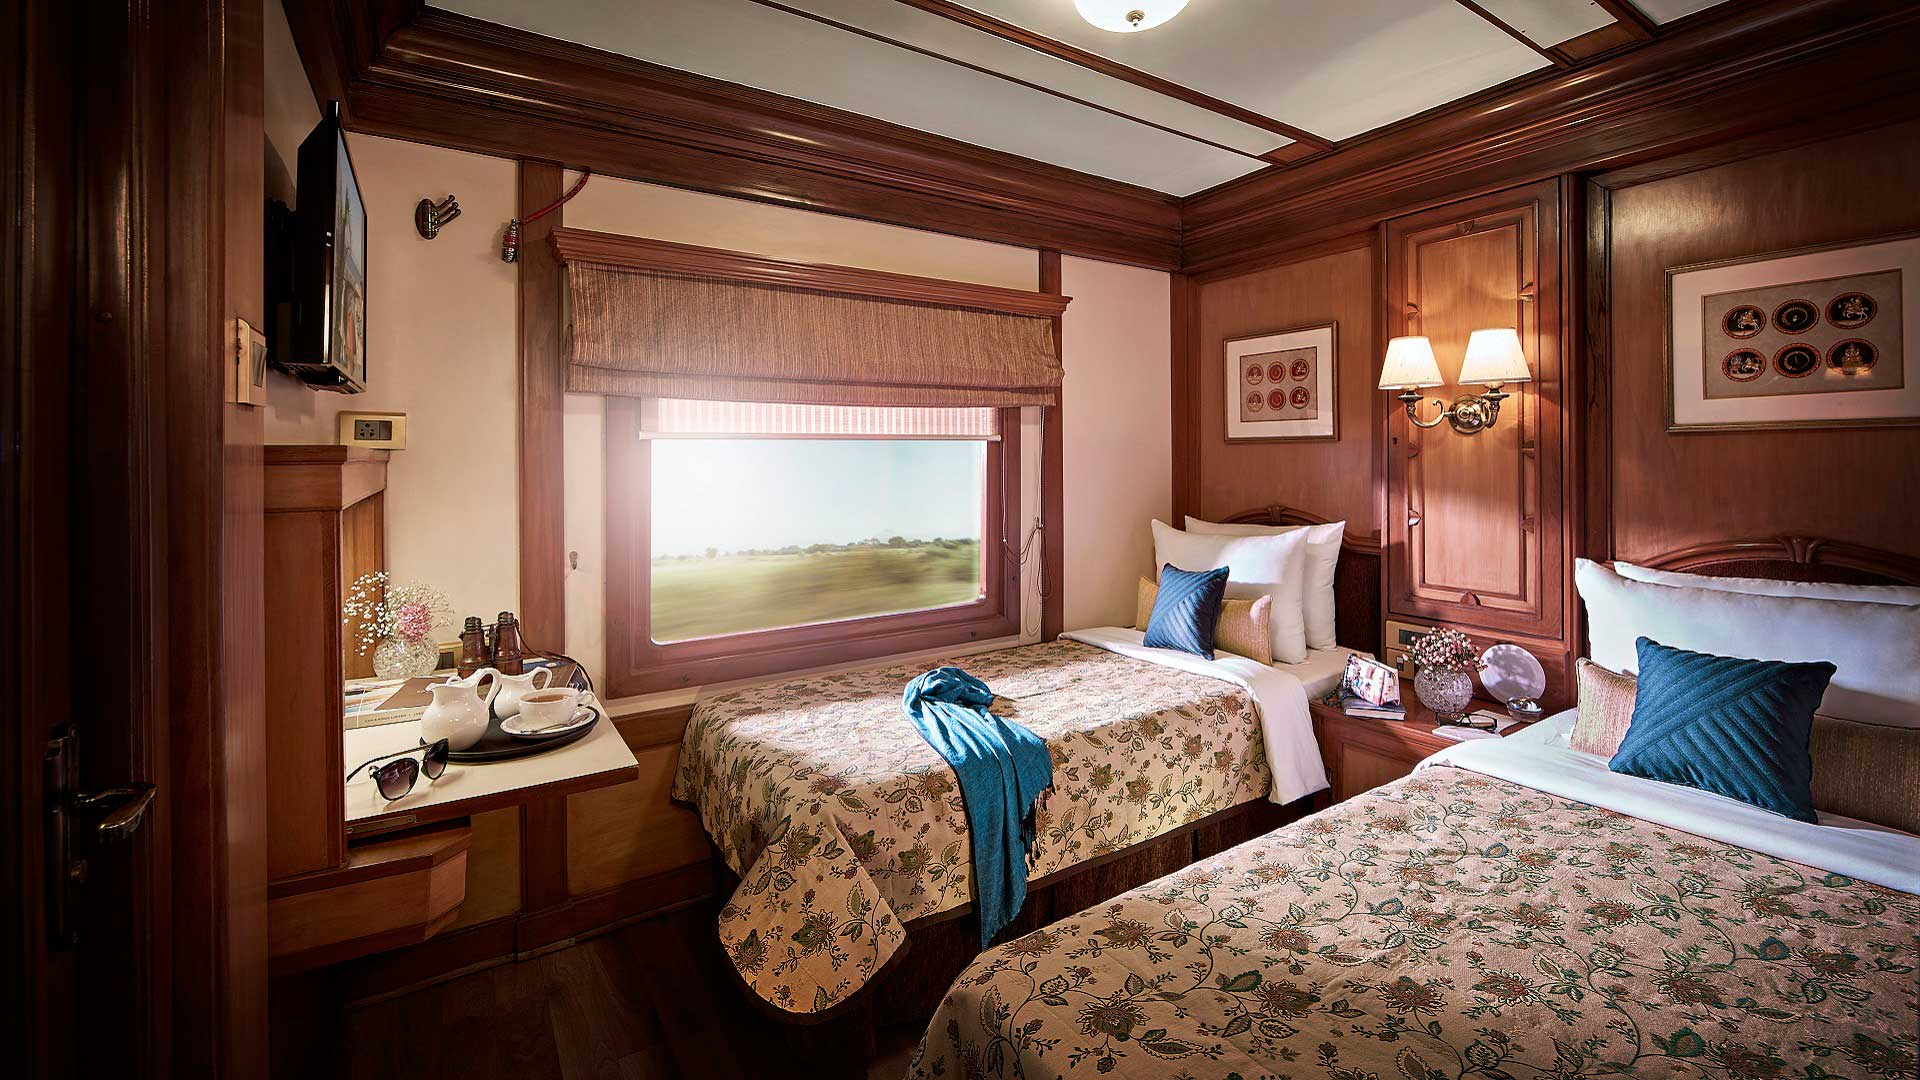 A Twin Cabin aboard the Deccan Odyssey train, which travels across India with GeoEx